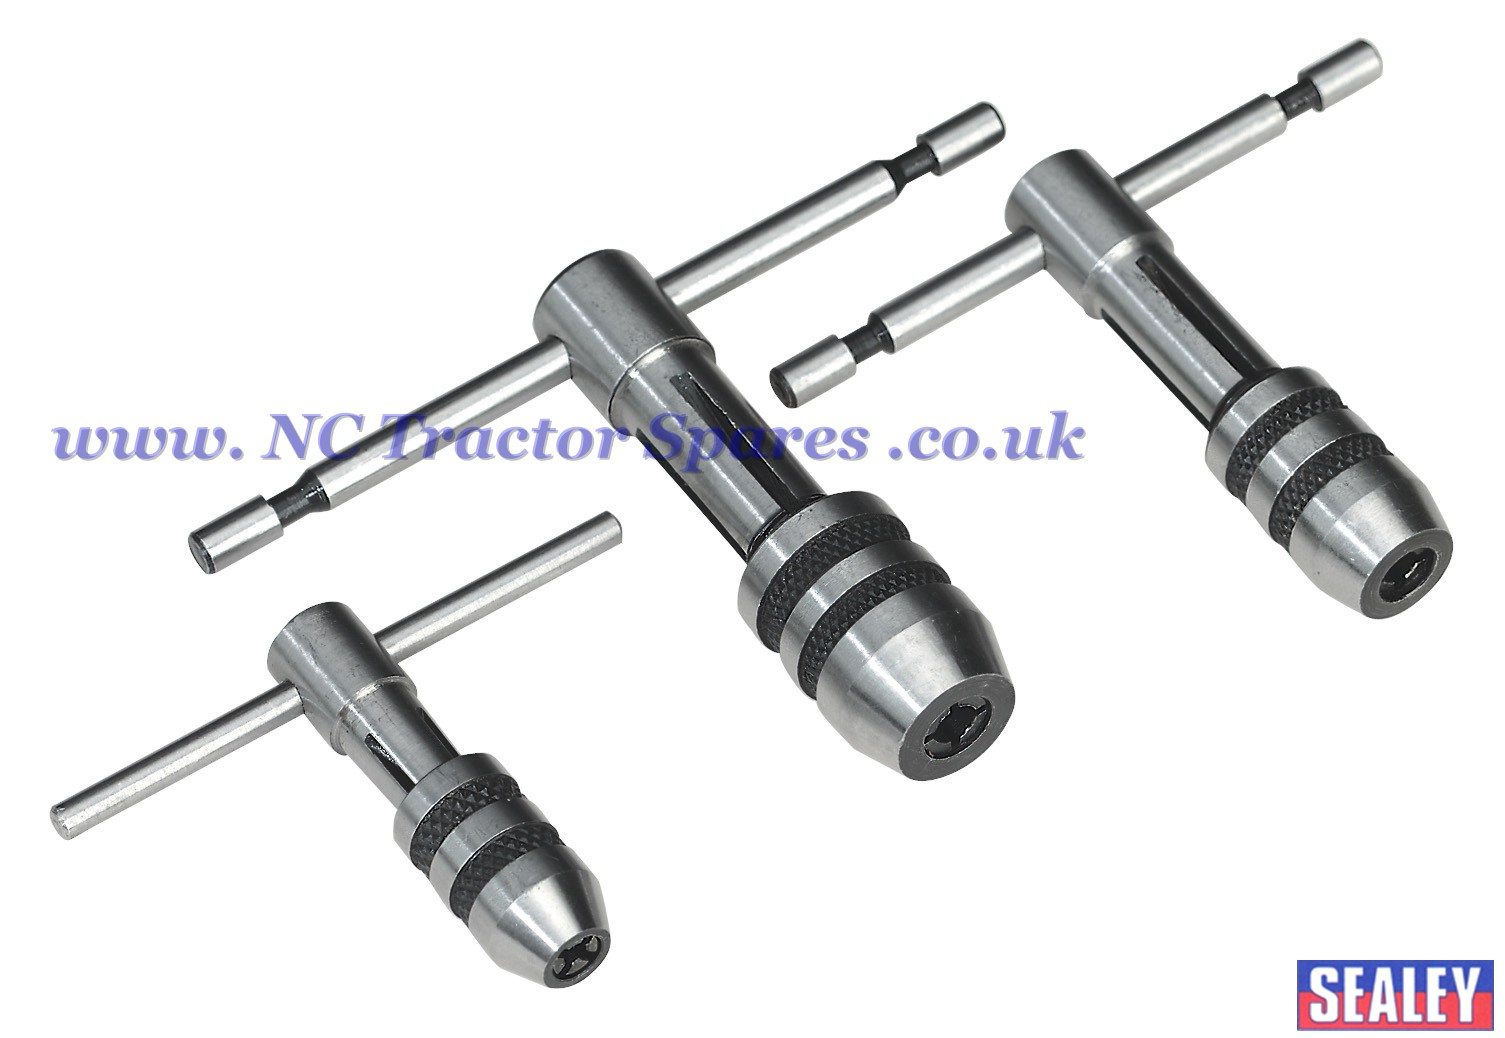 T Handle Tap Wrench Set 3pc